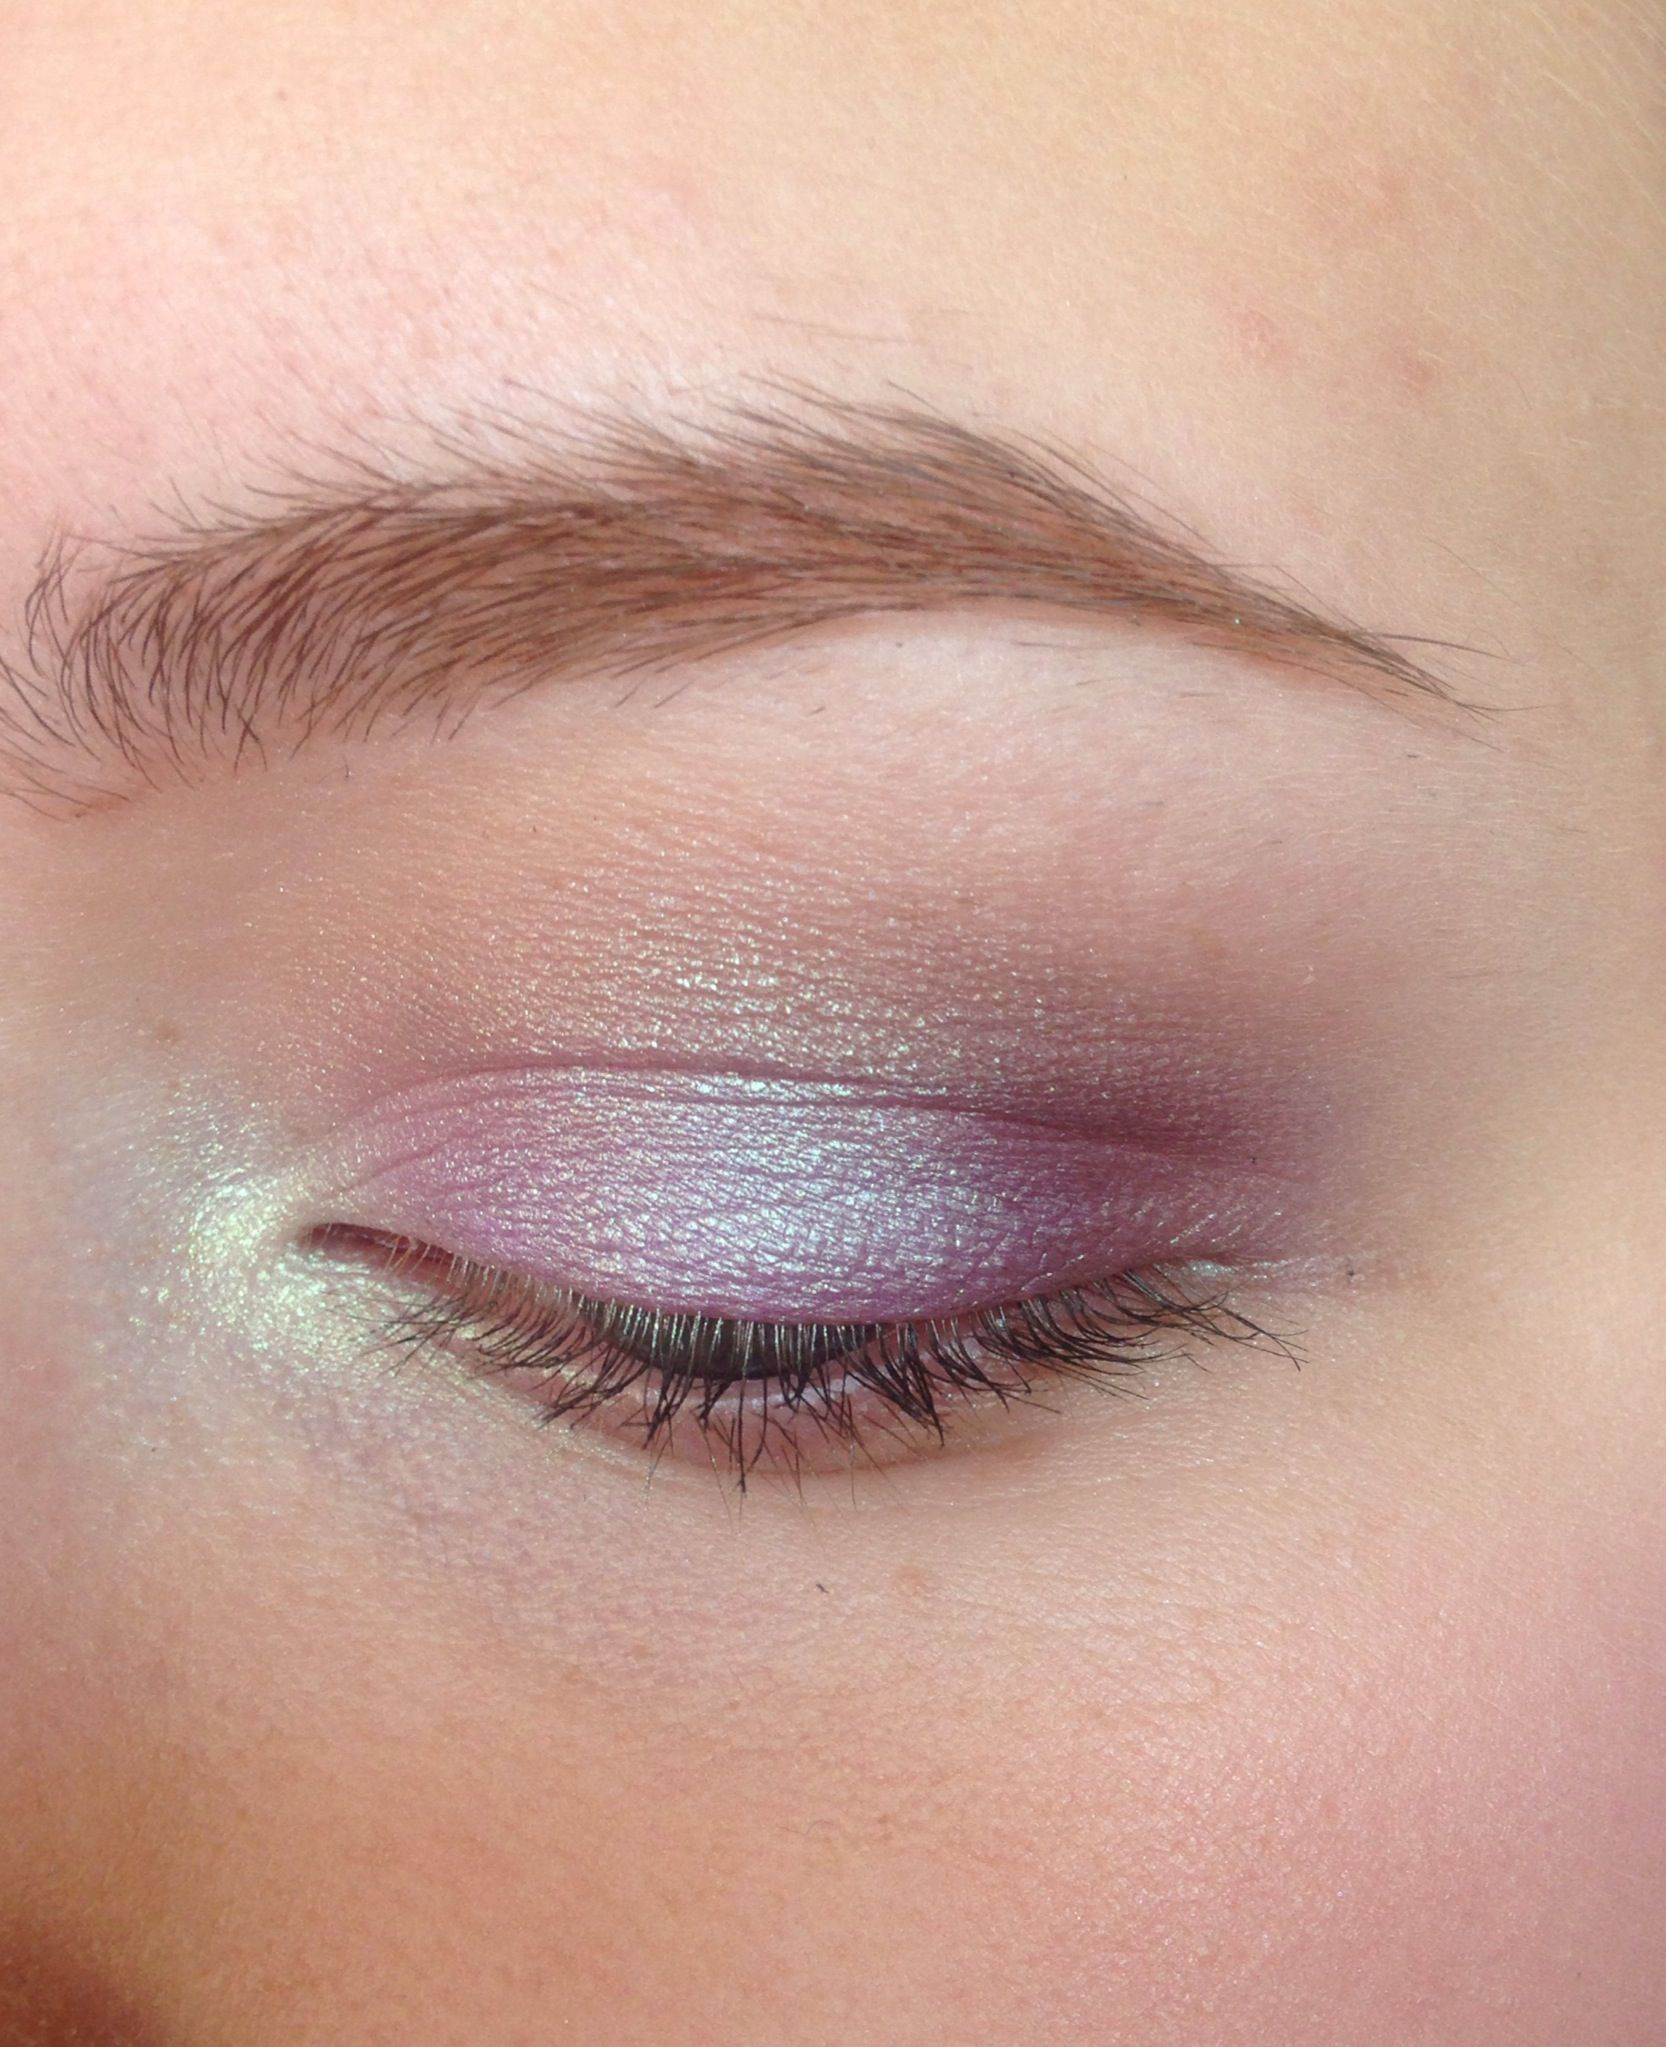 drag to resize or shiftdrag to move Aesthetic makeup